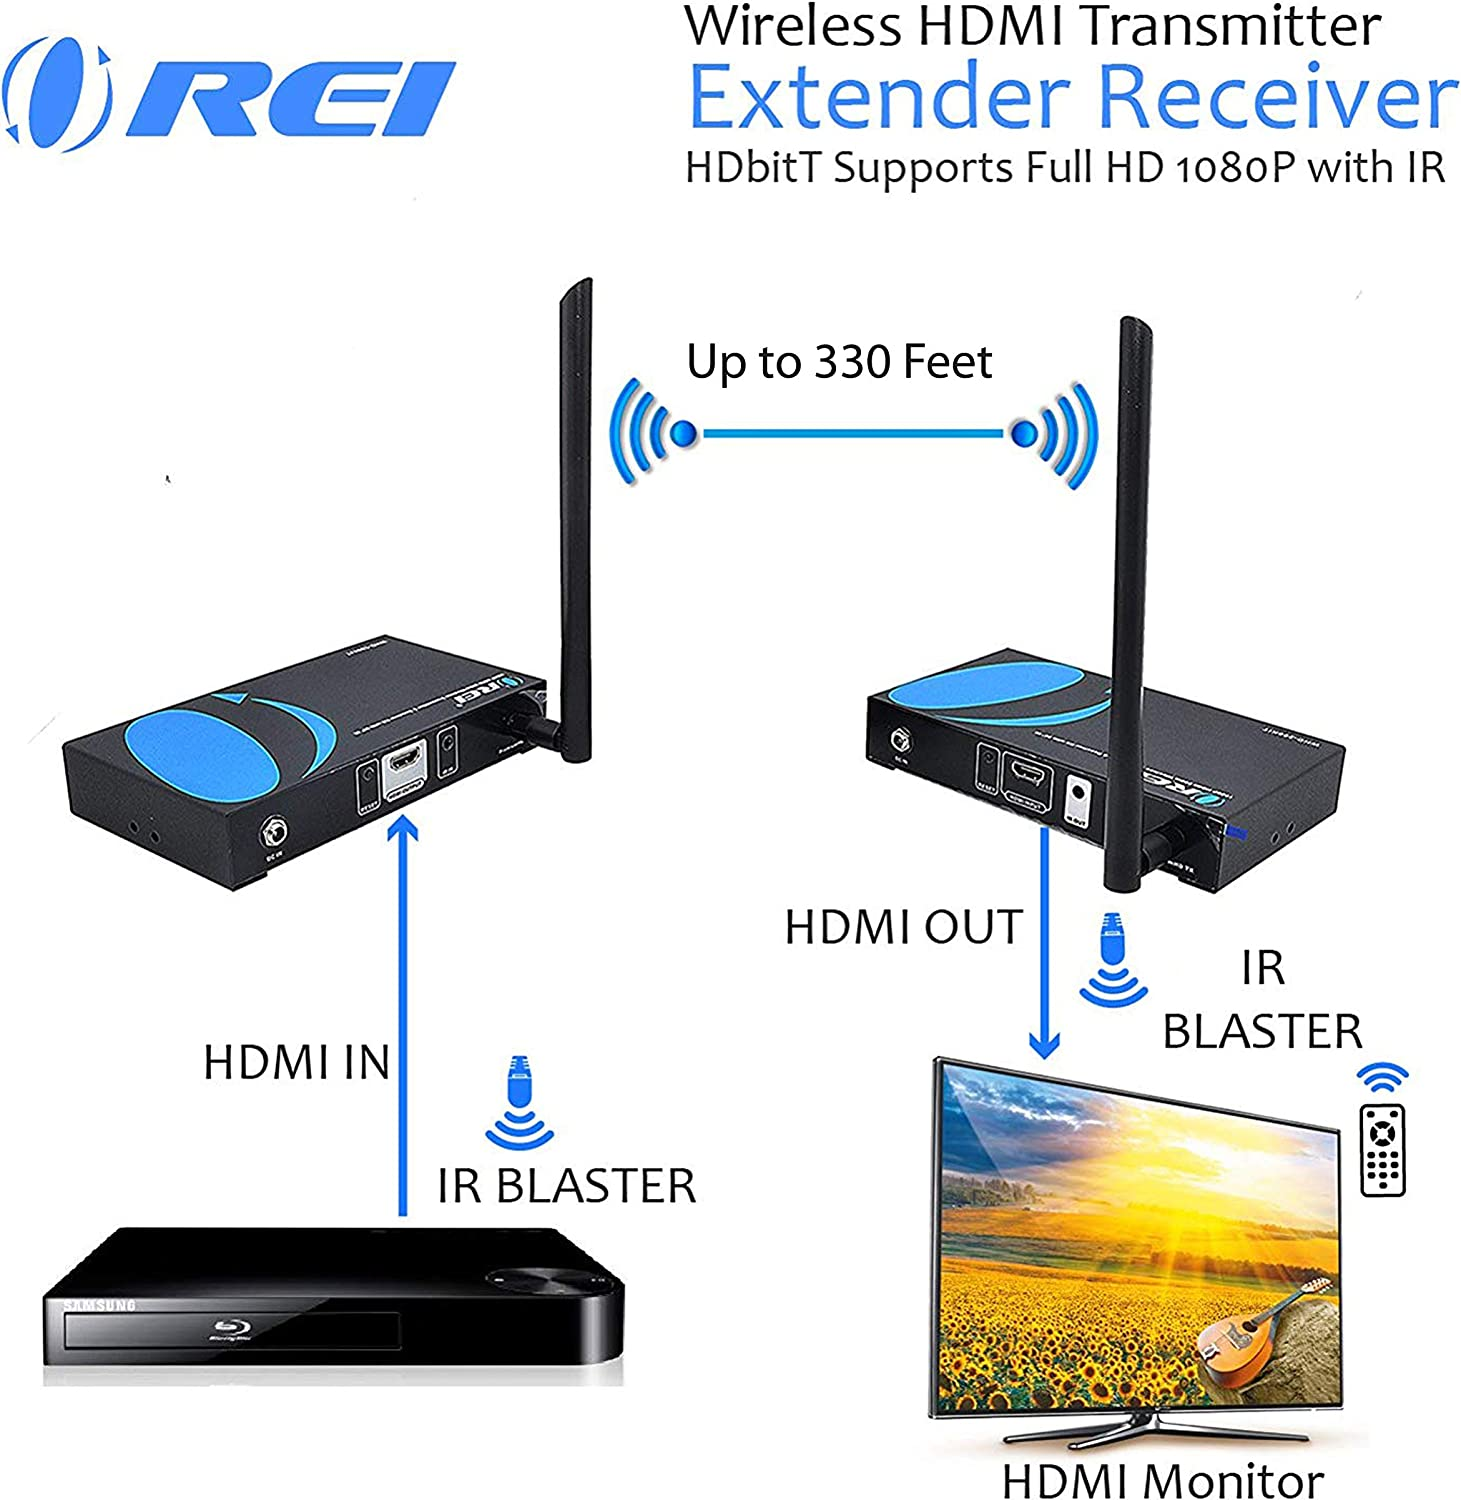 Wireless HDMI Transmitter & Receiver Extender by OREI - Upto 300 Feet - Long Range - Perfect for Streaming from Laptop, PC, Cable, Netflix, YouTube, PS4 to HDTV/Projector - IR Support - Low Latency: Home Audio & Theater